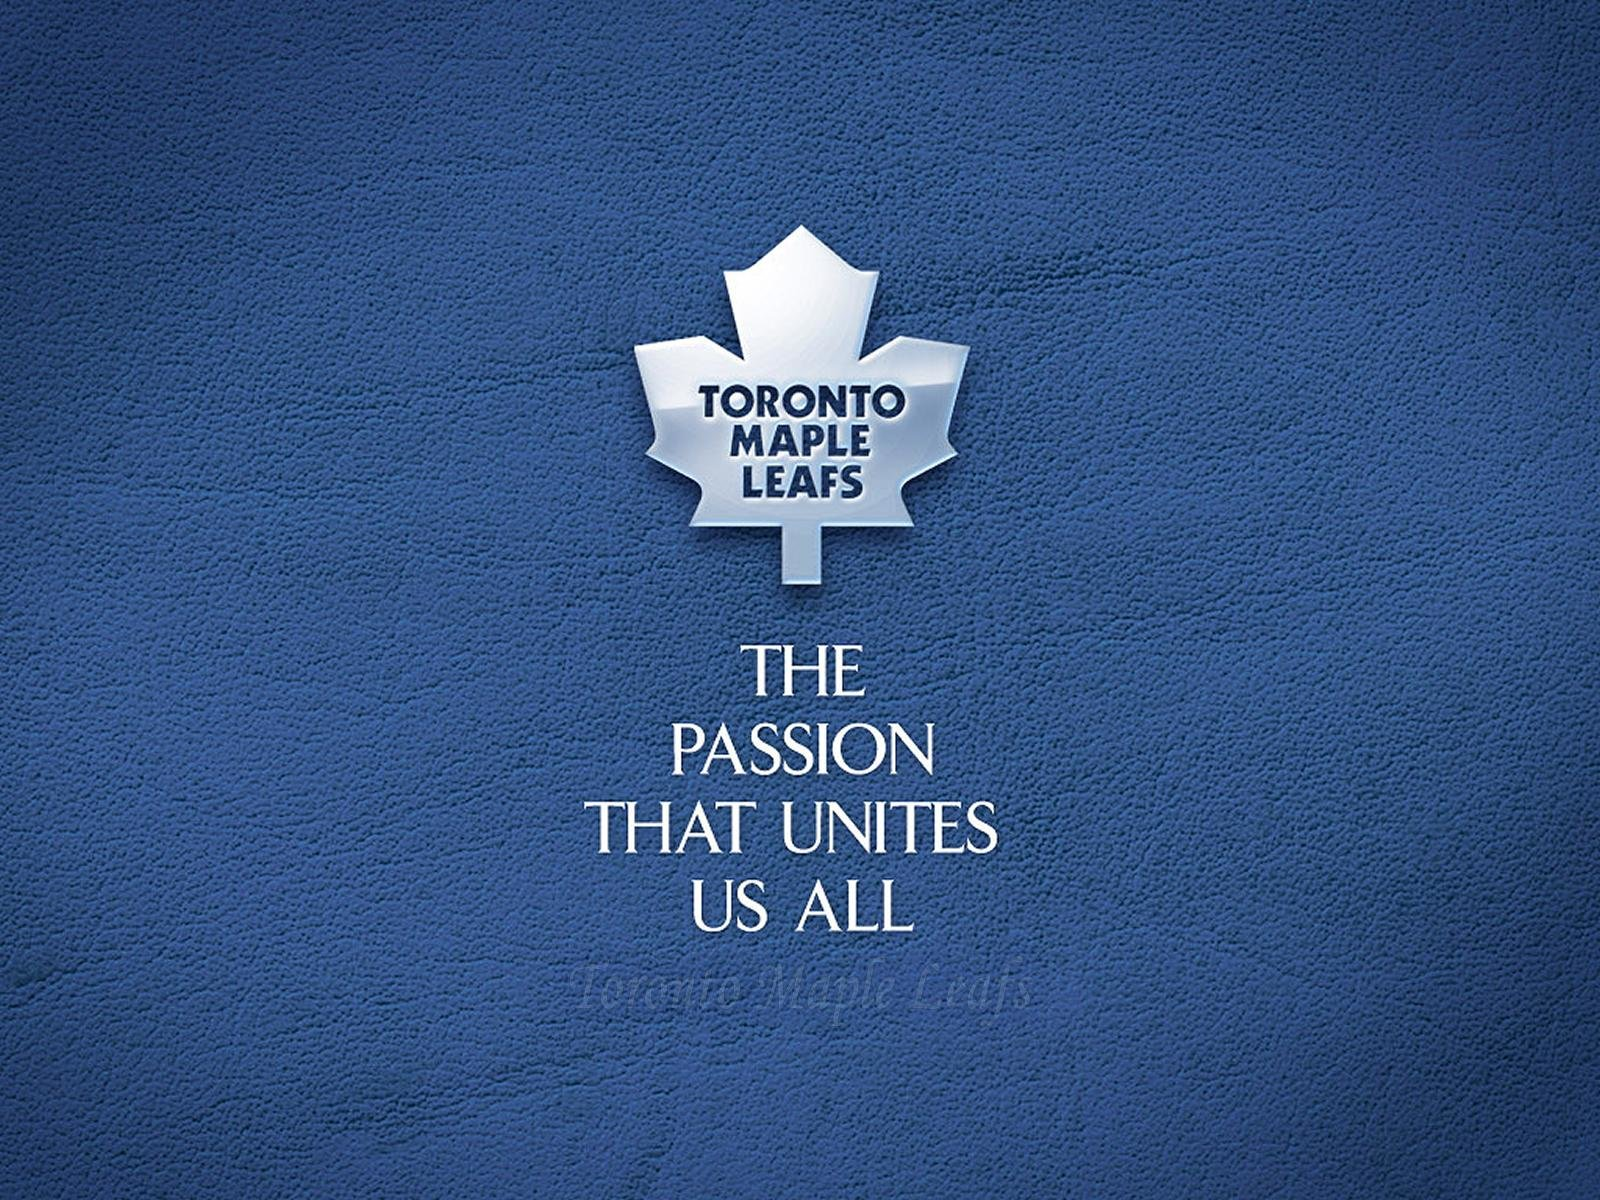 Toronto Maple Leafs Wallpapers Hd For Desktop Backgrounds